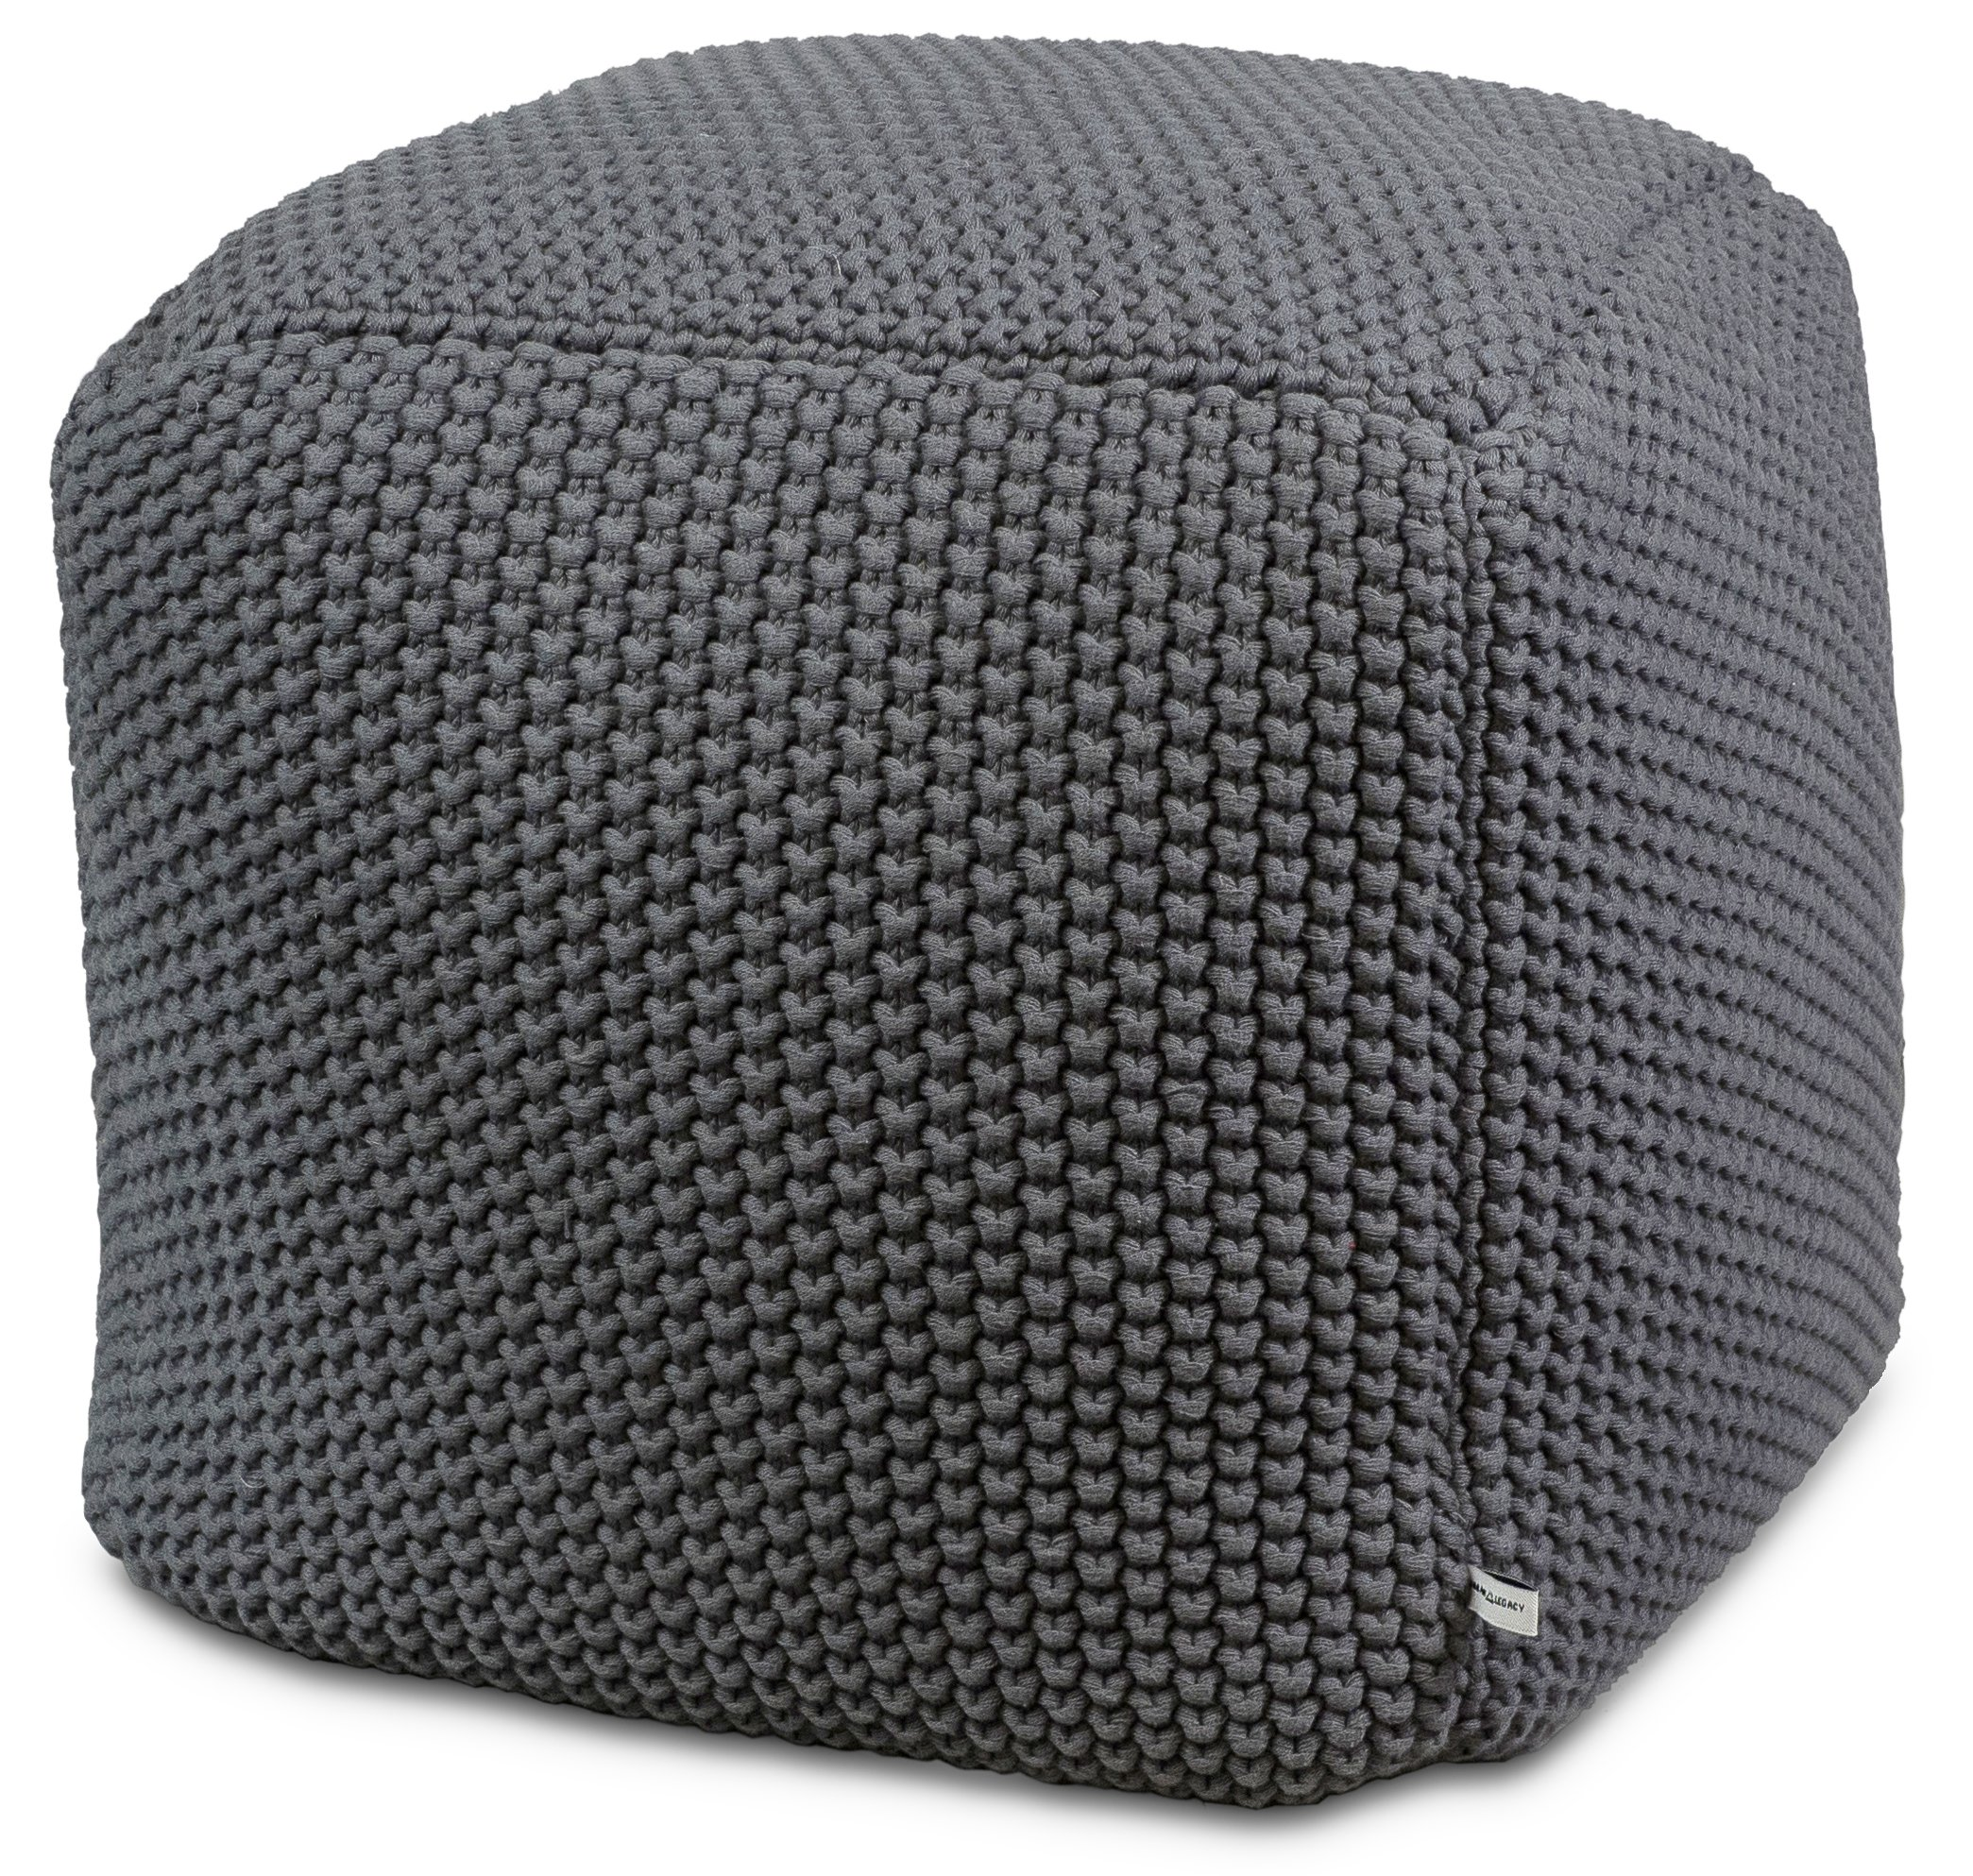 Urban Legacy Crocheted/Knitted Ottoman Pouf (100% Cotton, Handmade, Square, Beautiful, Soft and Lightweight, Available in Four Colors) | by (Gray)